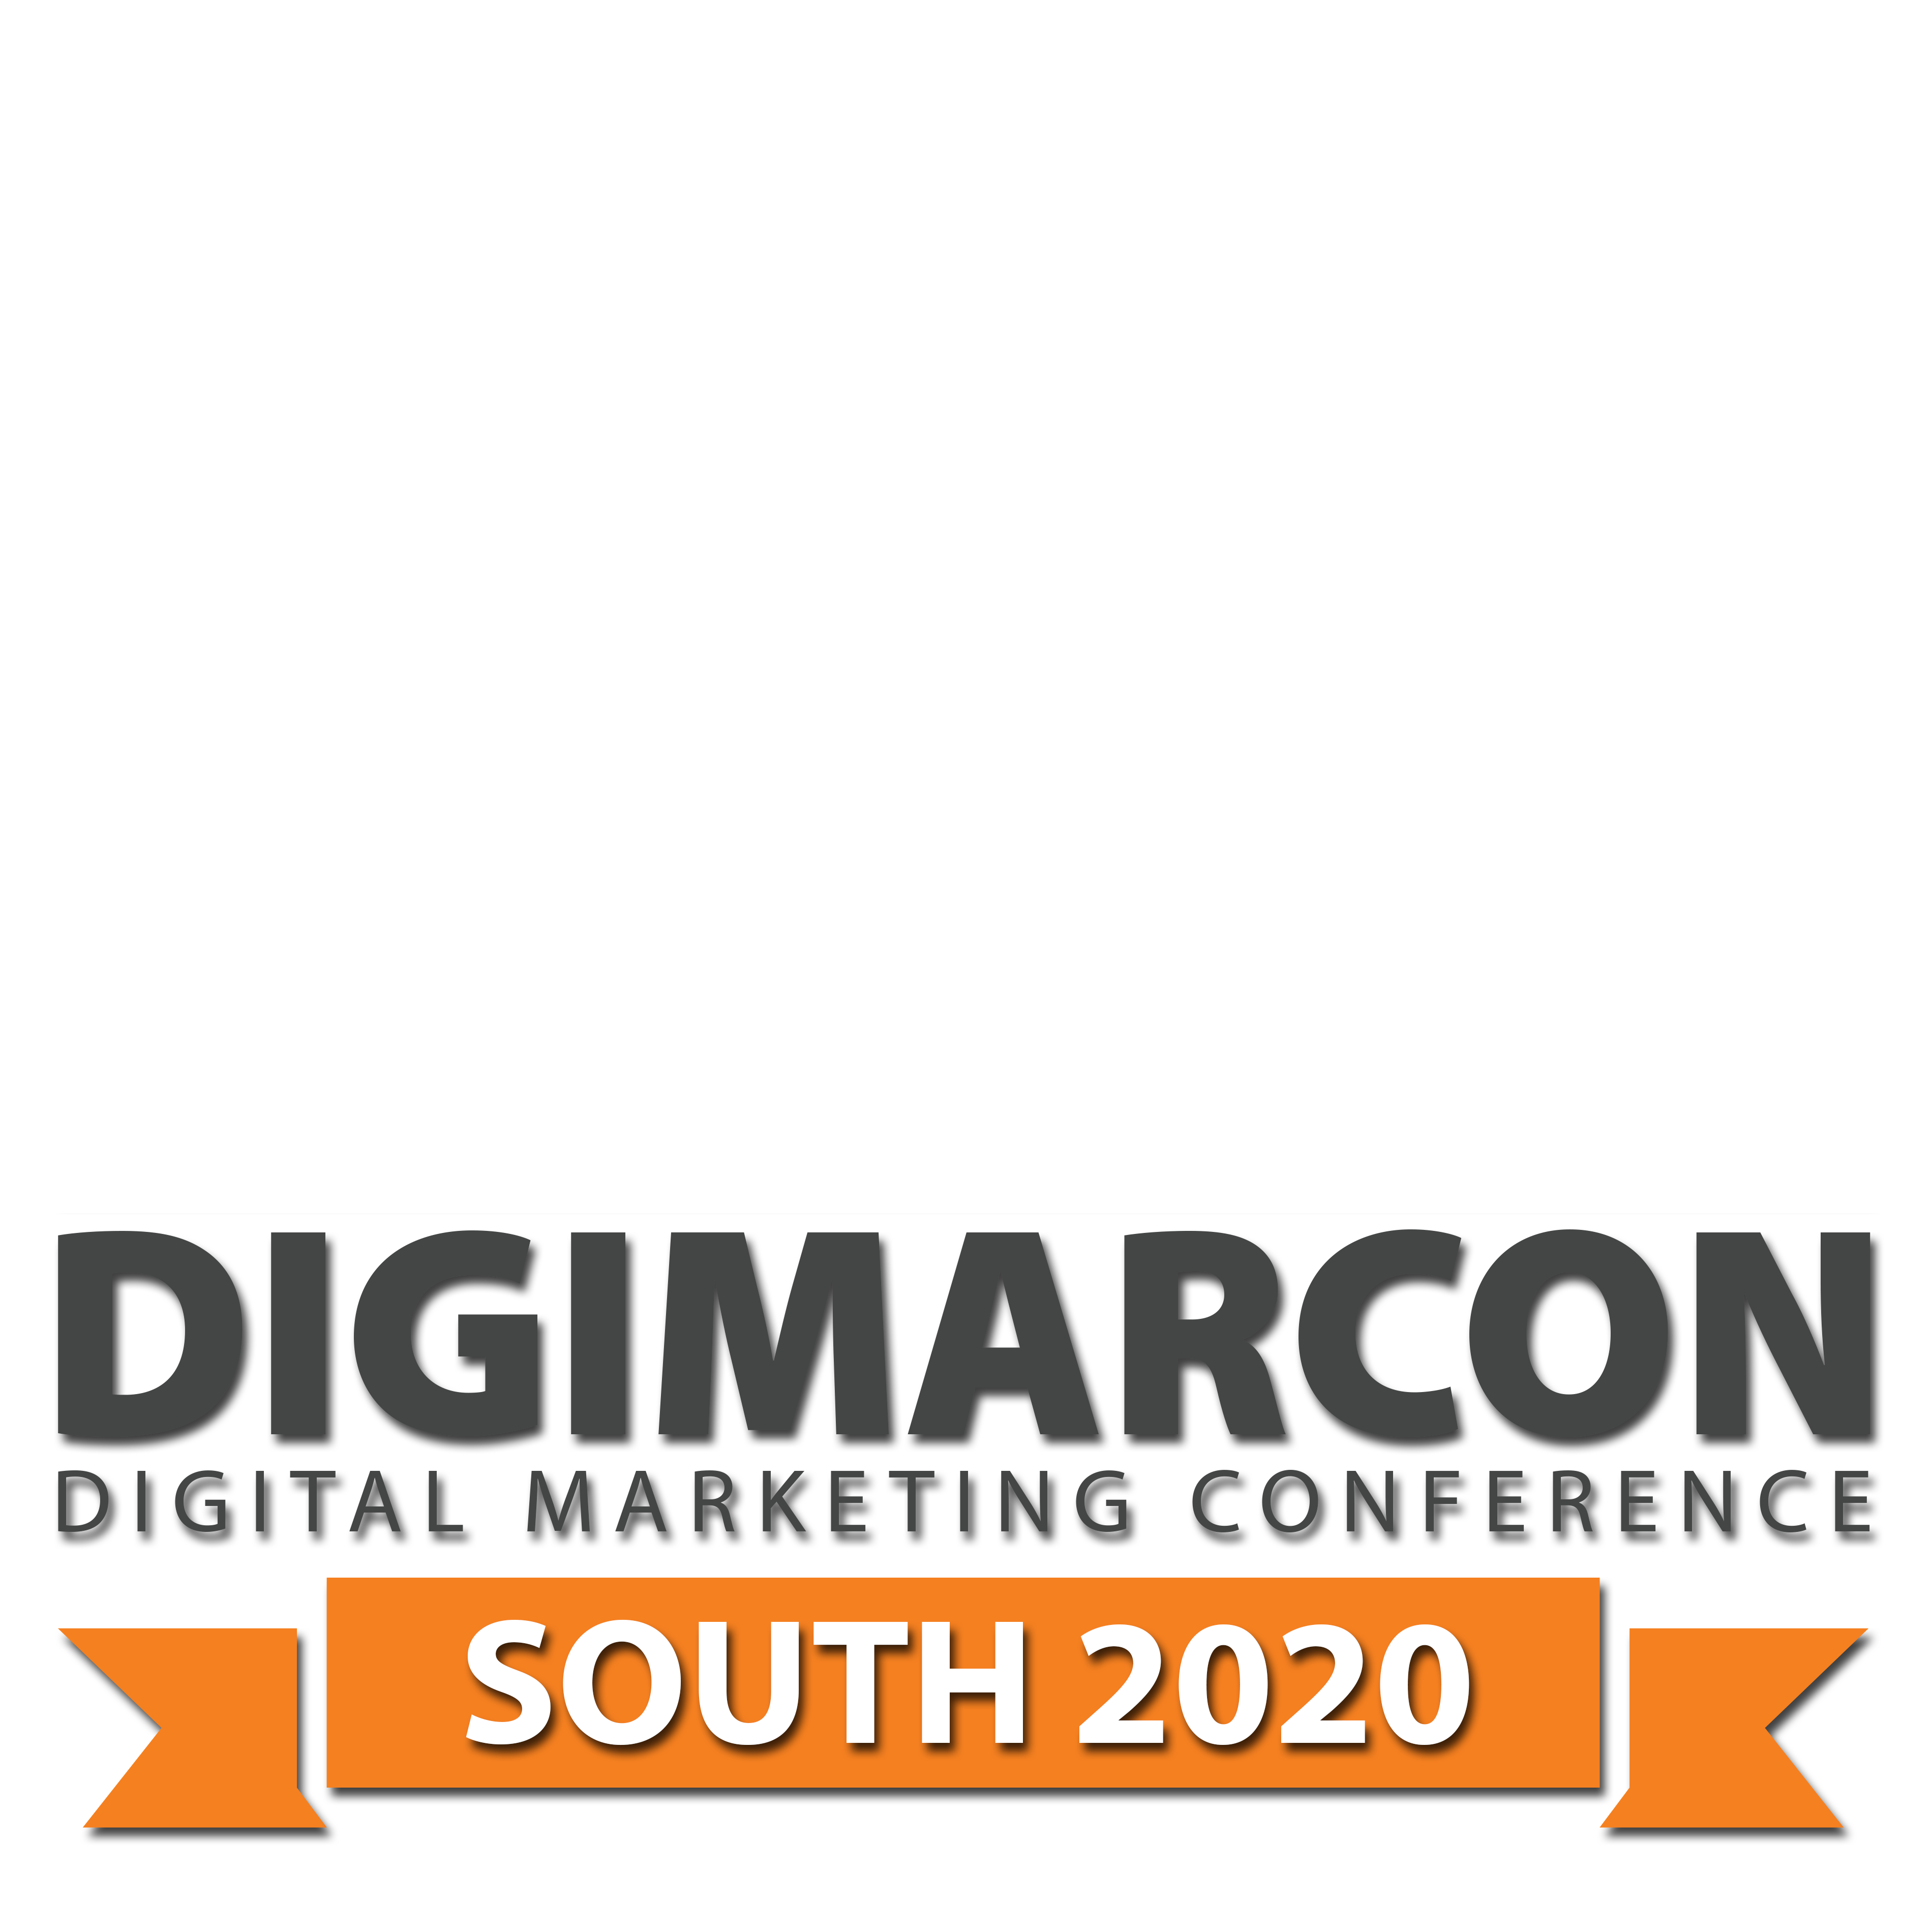 DigiMarCon South 2020 – Digital Marketing Conference & Exhibition